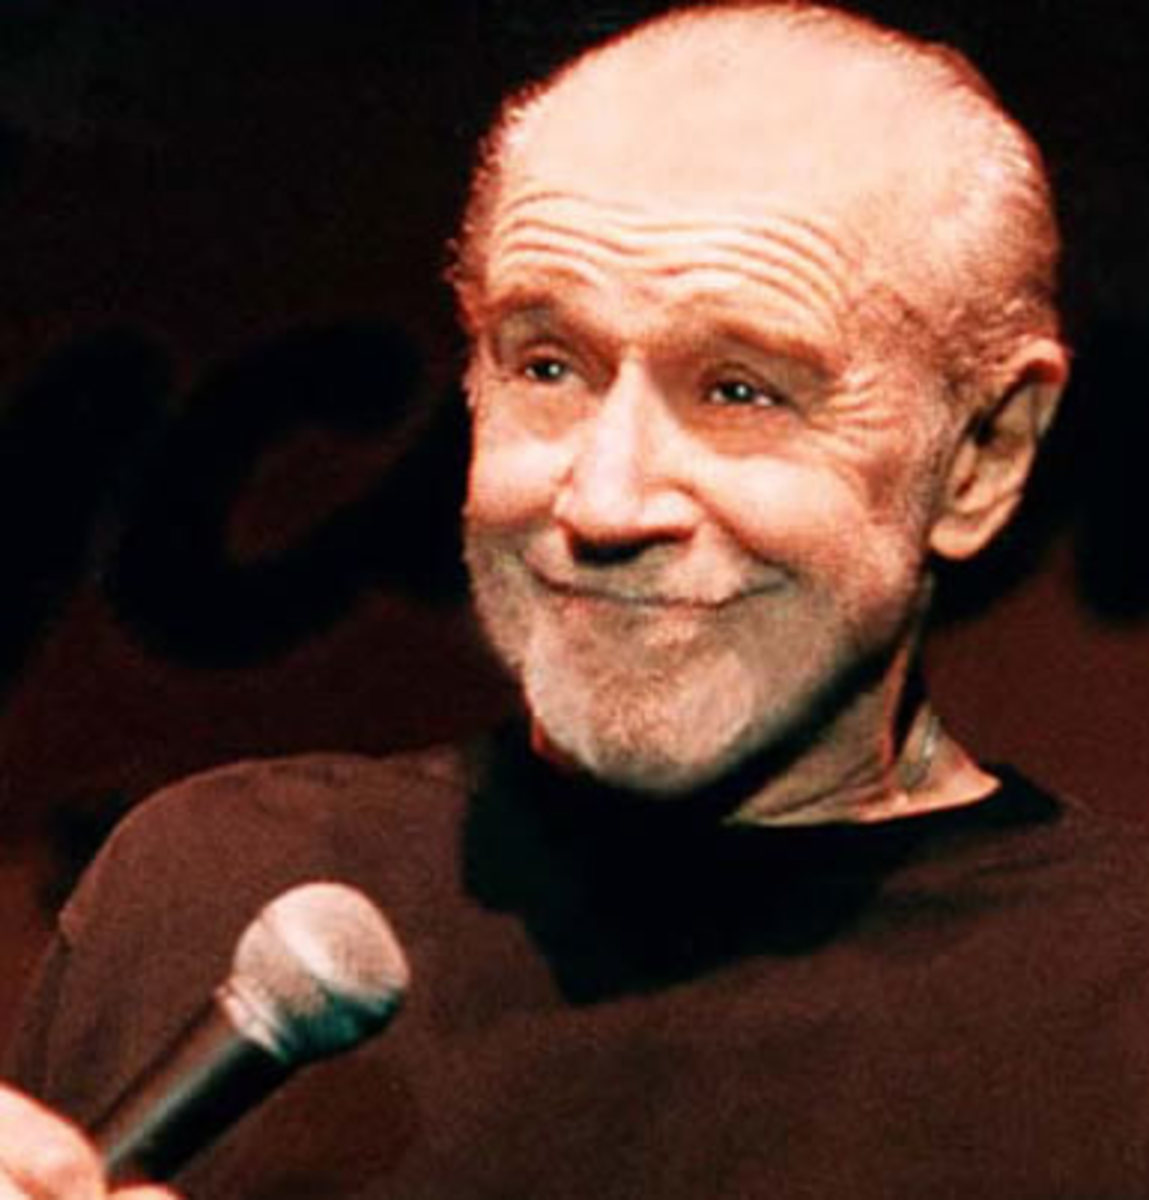 George Carlin: The Loss Of Comedic Genius